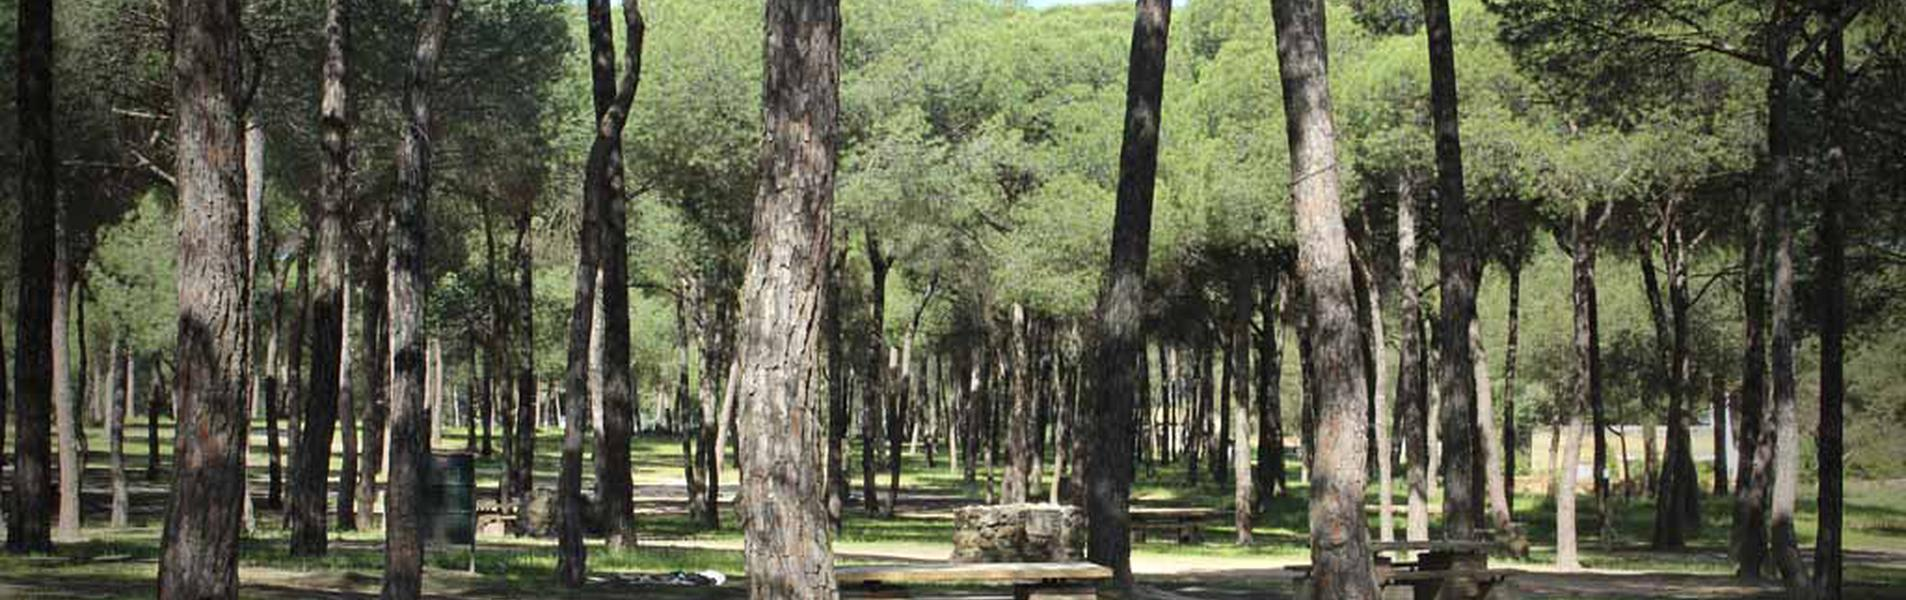 "Paraje Natural ""El Corchito"""